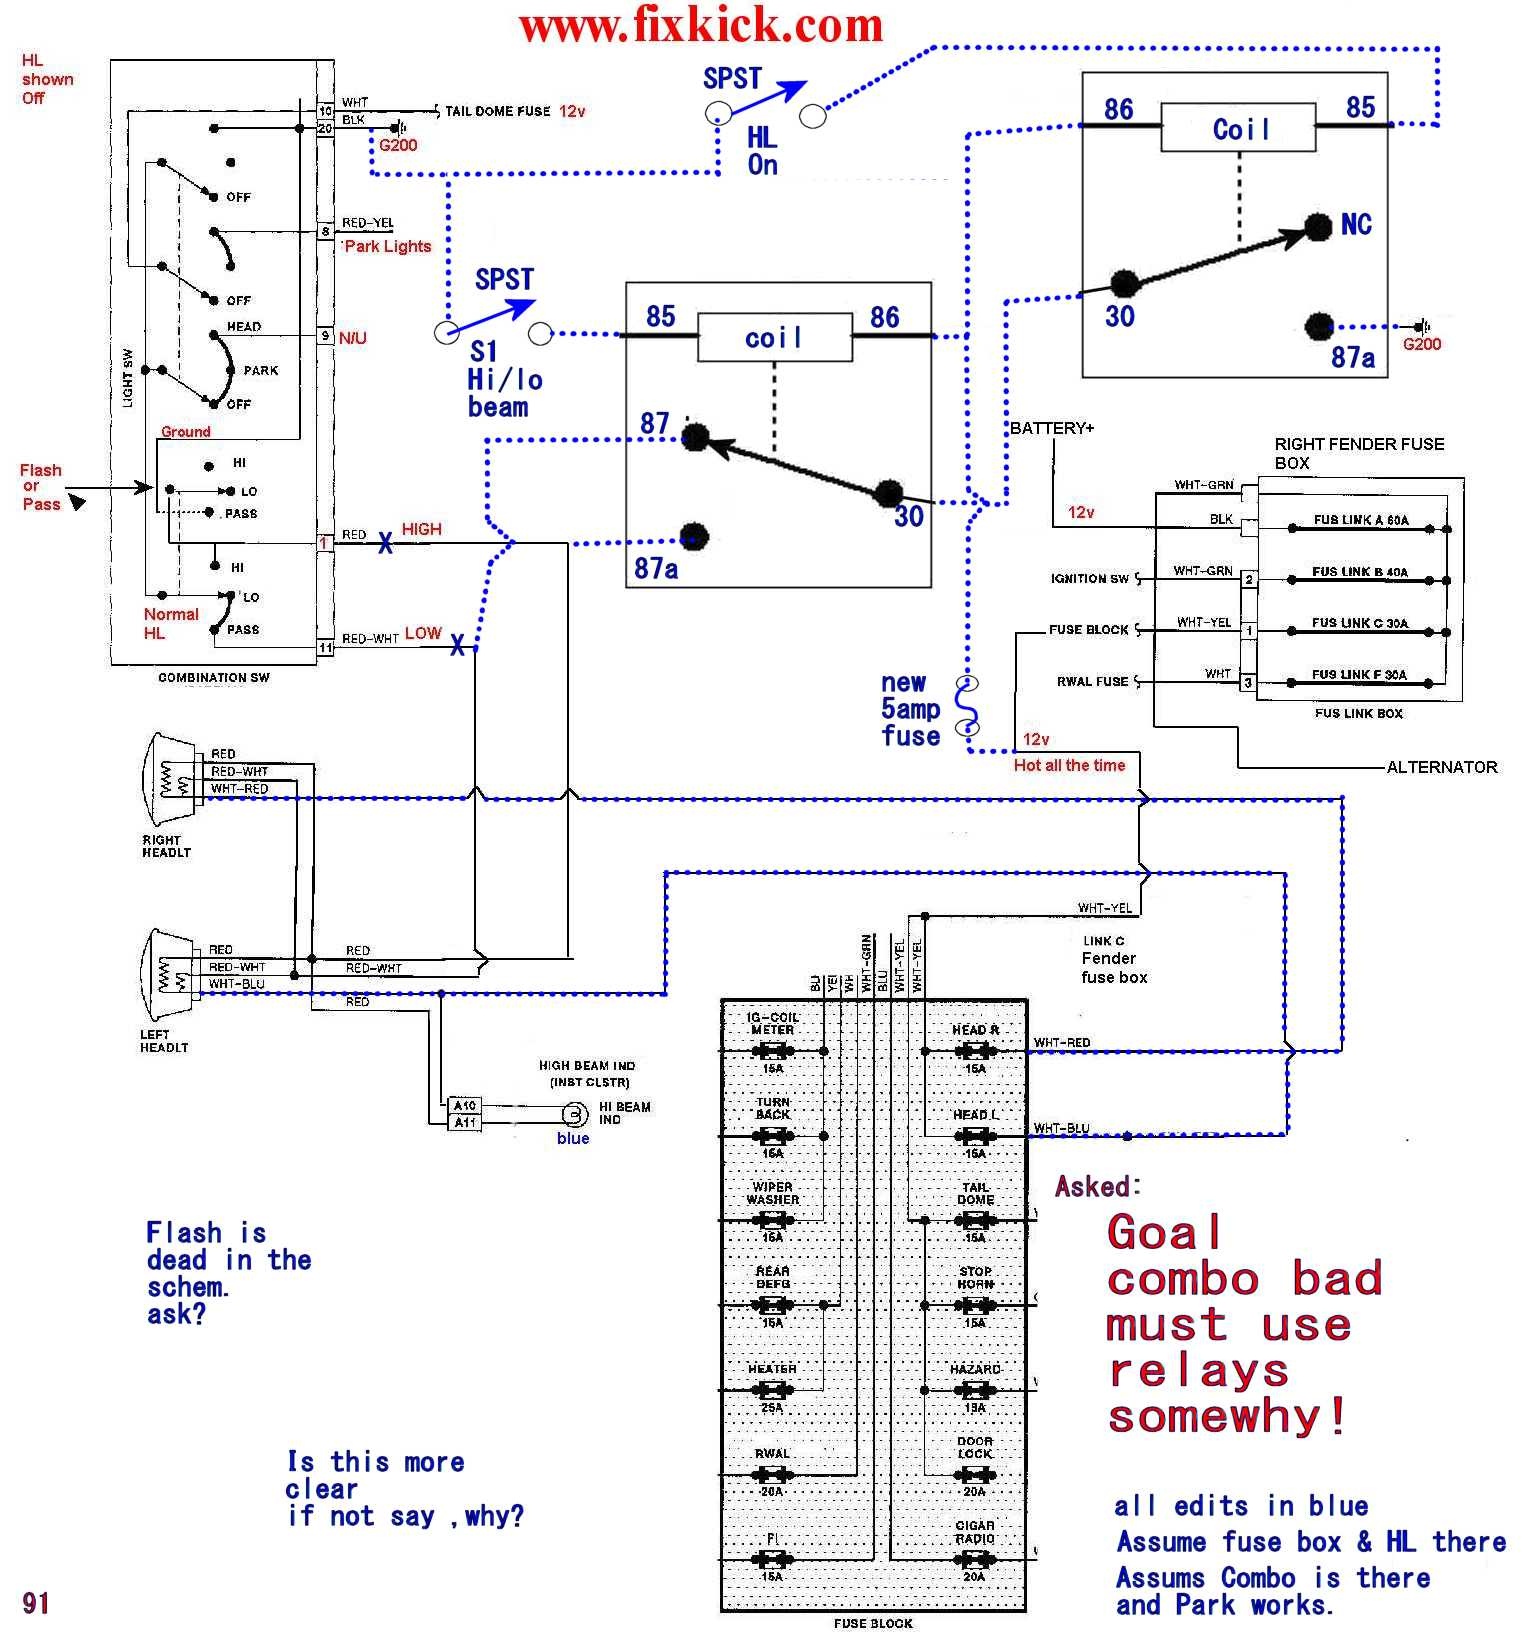 Electrical Failure Index 95 Town Car Starter Fuse Location How To